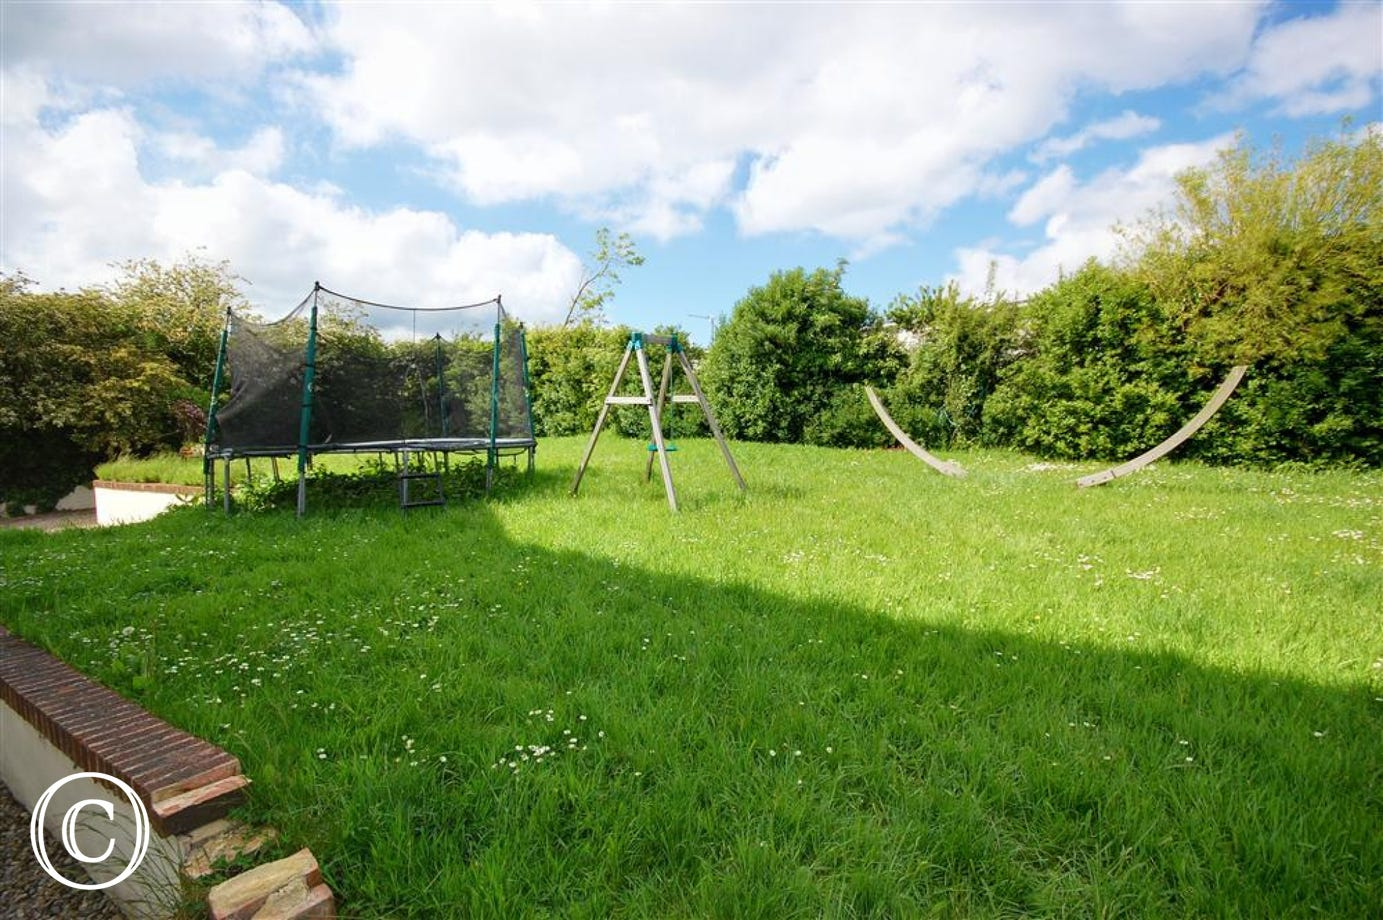 There is a Patio area and large Garden with children's play equipment to the rear of the property.